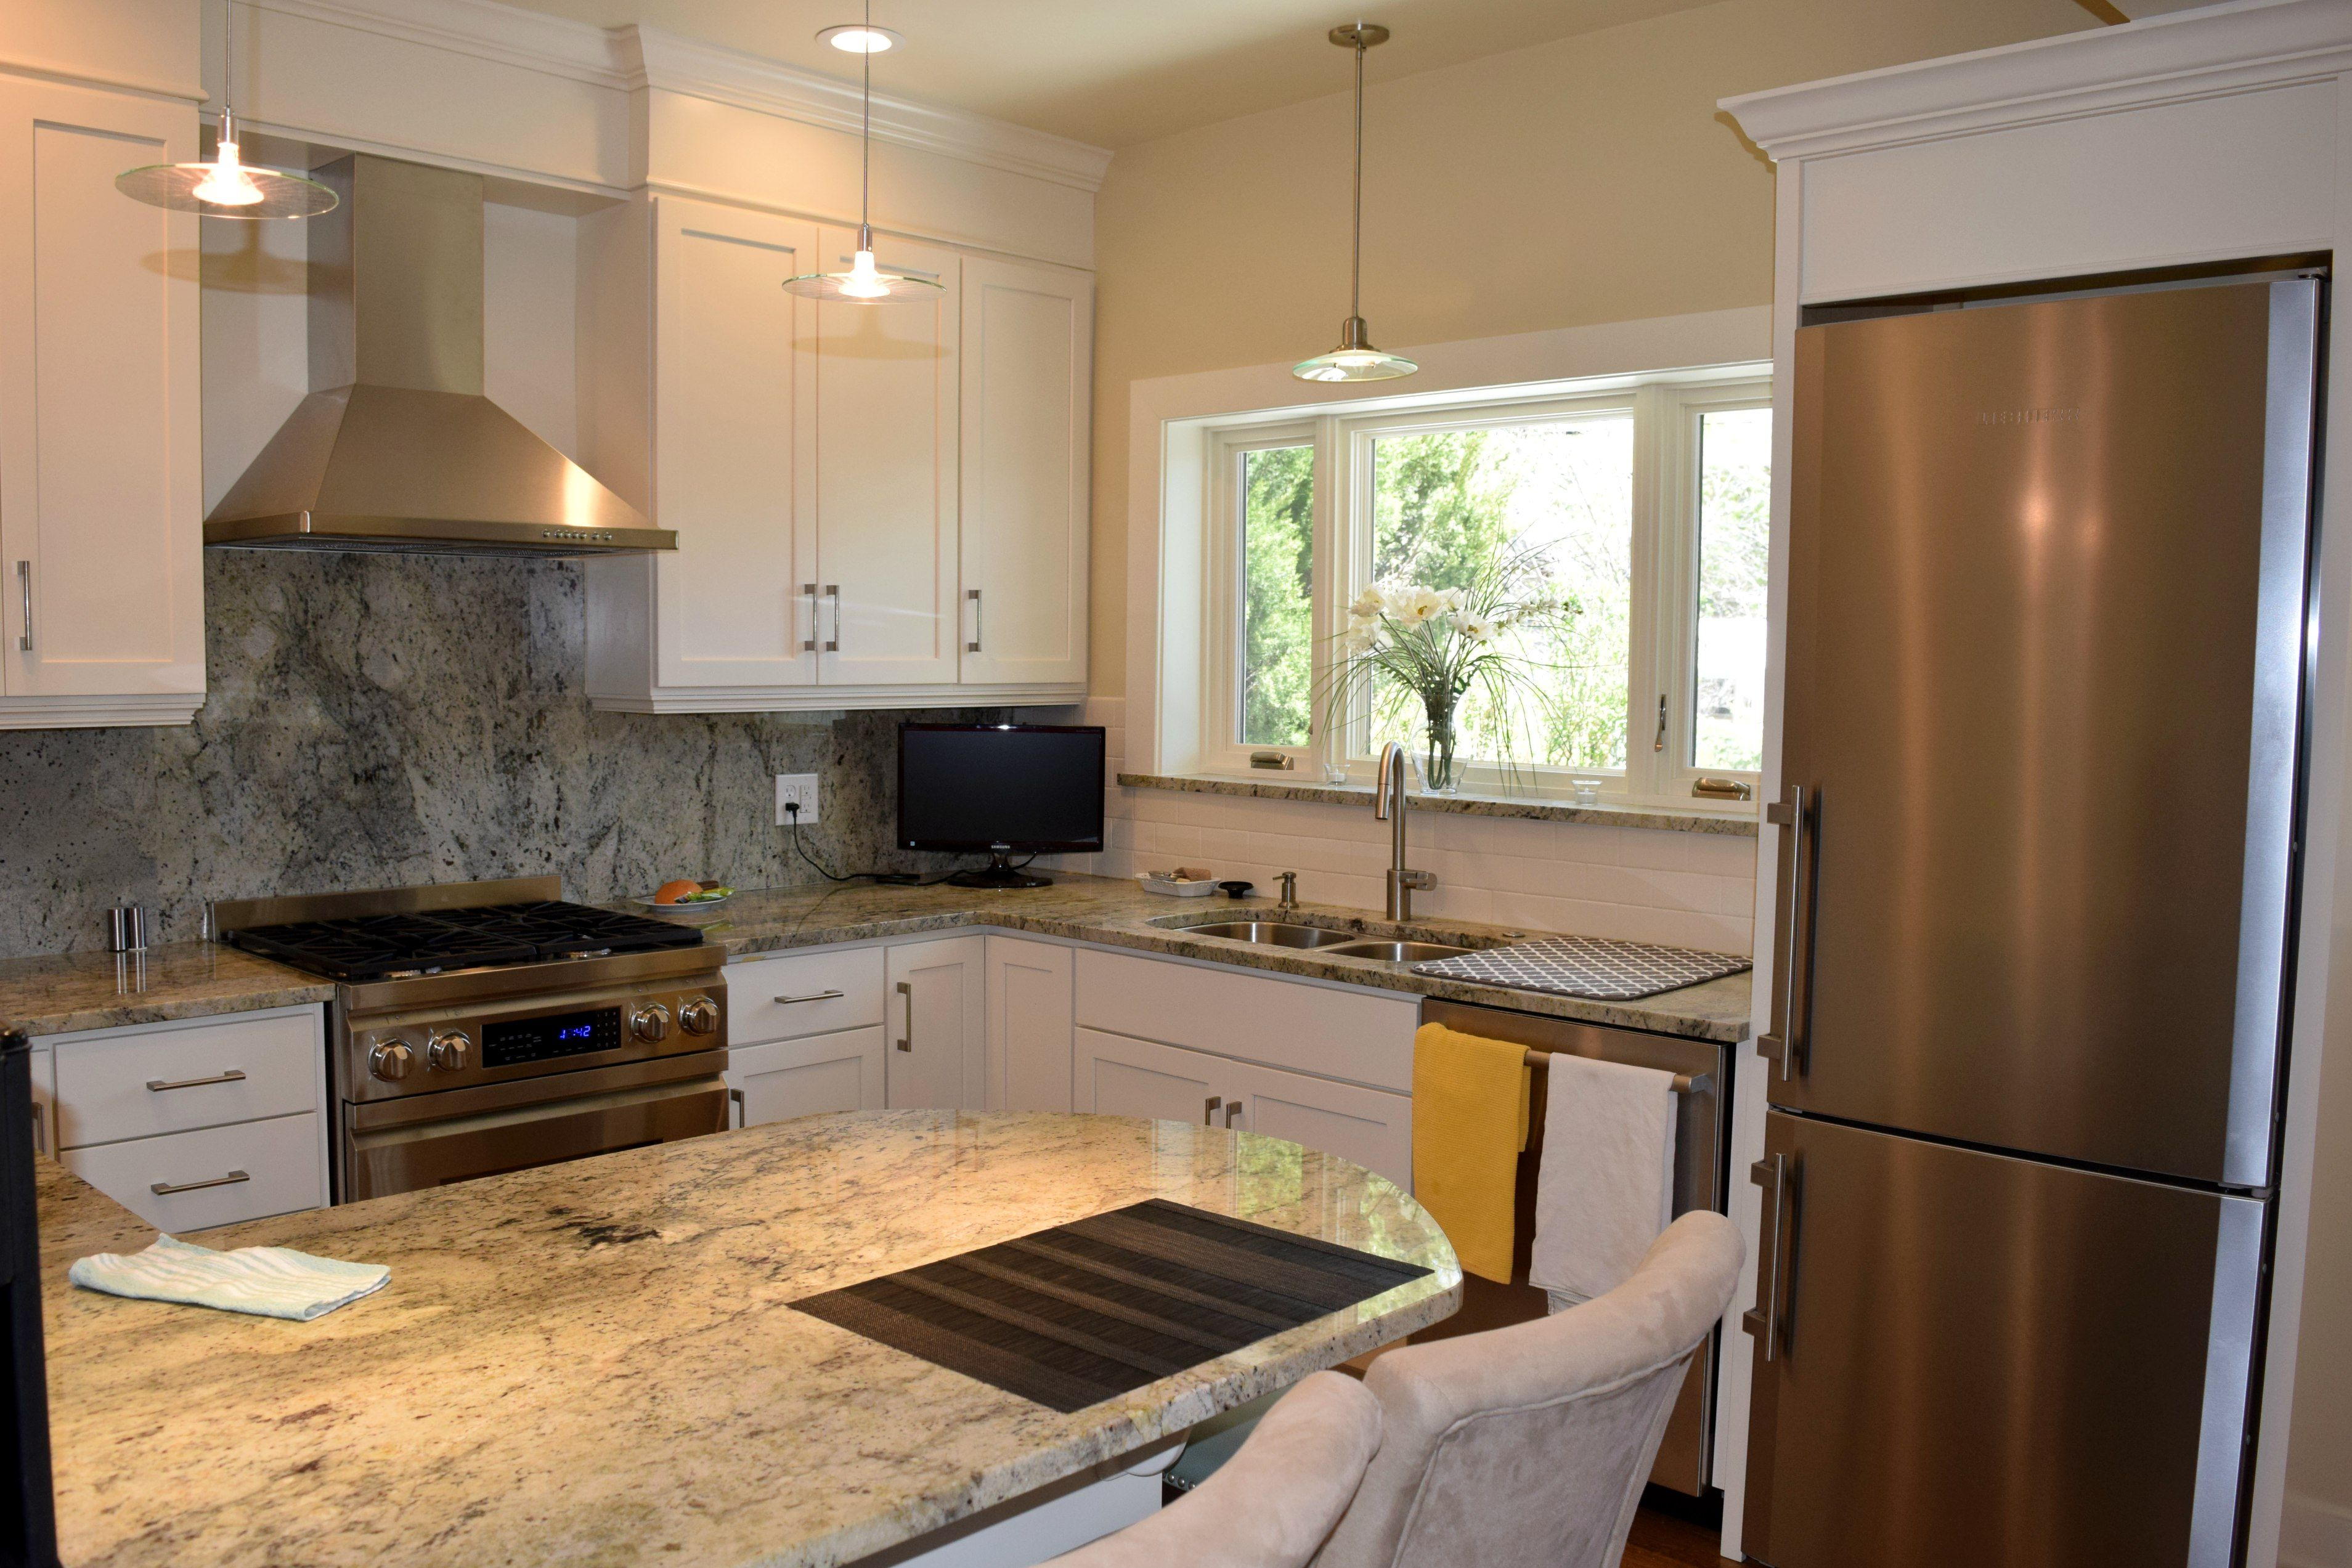 BKC Kitchen and Bath kitchen remodel - Cabinetry: Current by Crystal ...